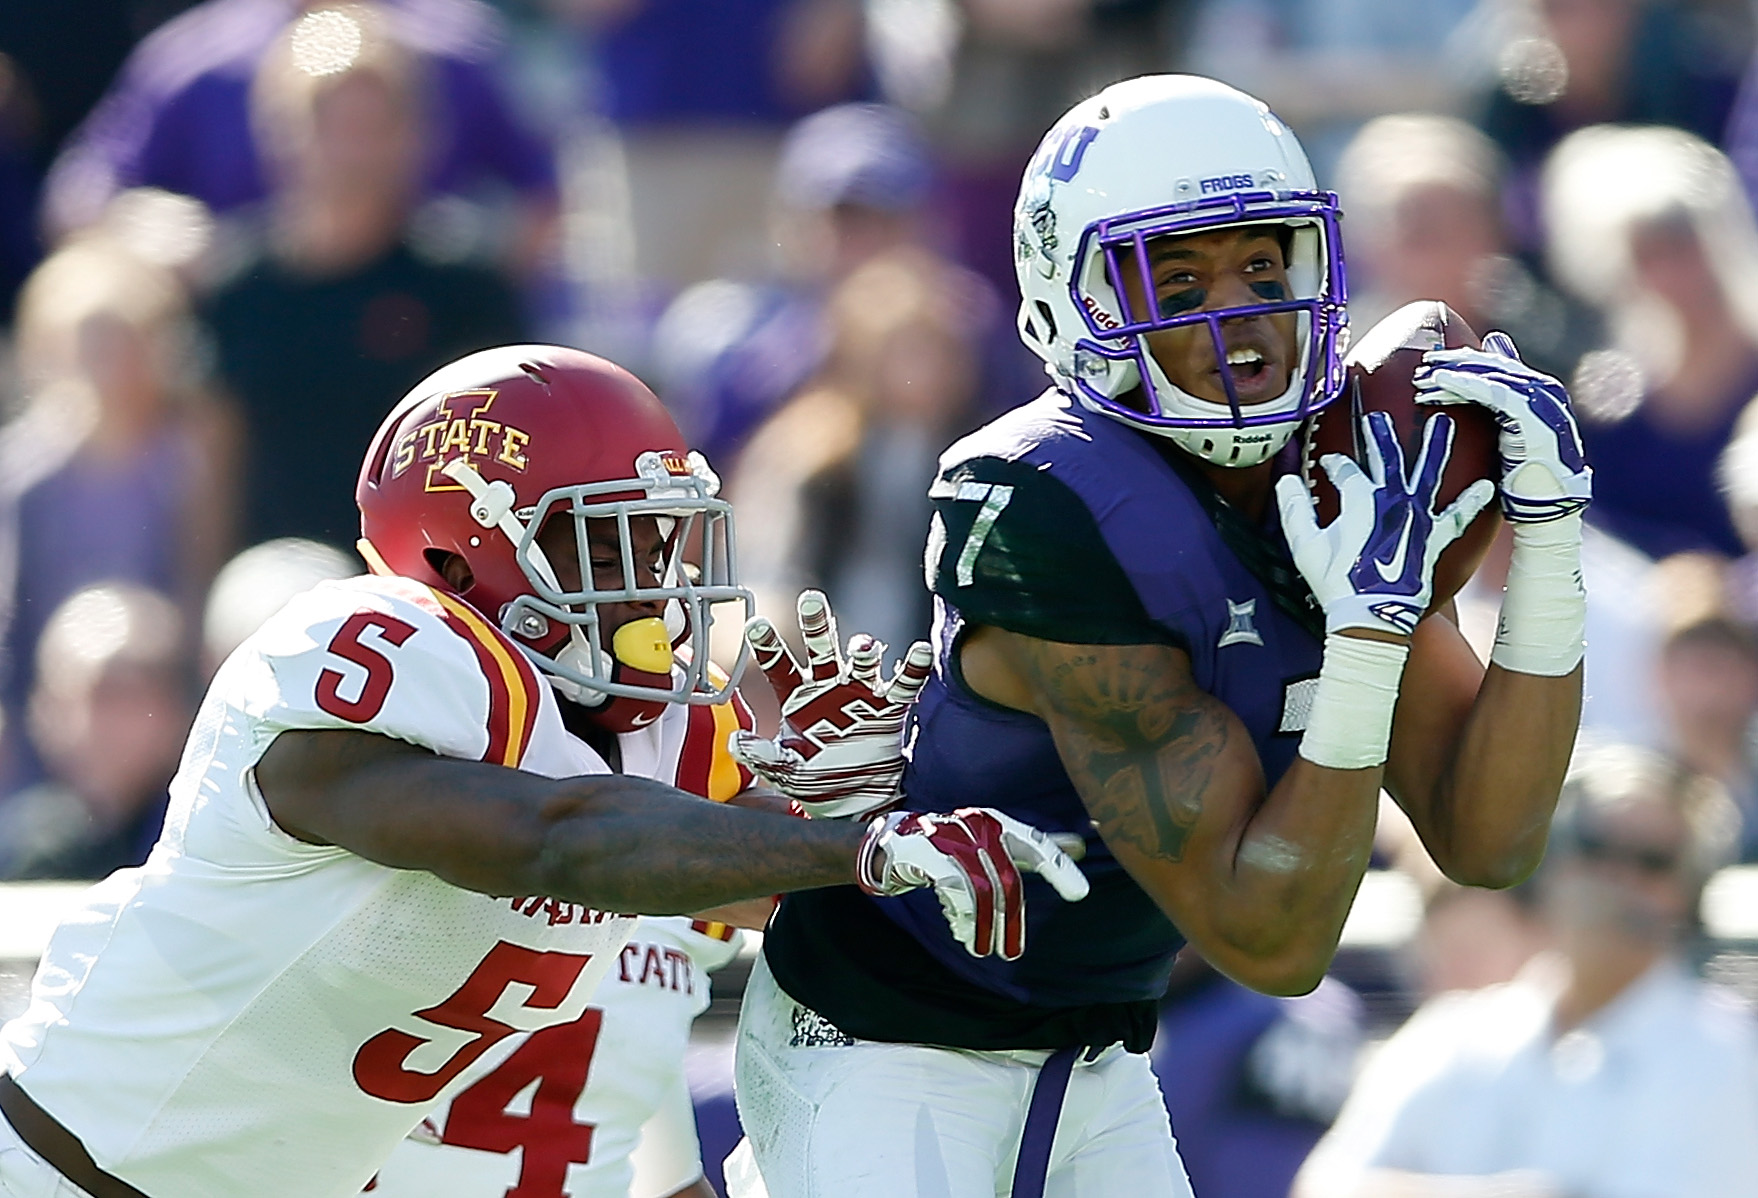 Wide receiver Kolby Listenbee, No. of the TCU Horned Frogs, catches a 49-yard reception of the Iowa State Cyclones during the second quarter of the Big 12 college football game in Decmeber 2014 in Fort Worth, Texas. (Getty Images)